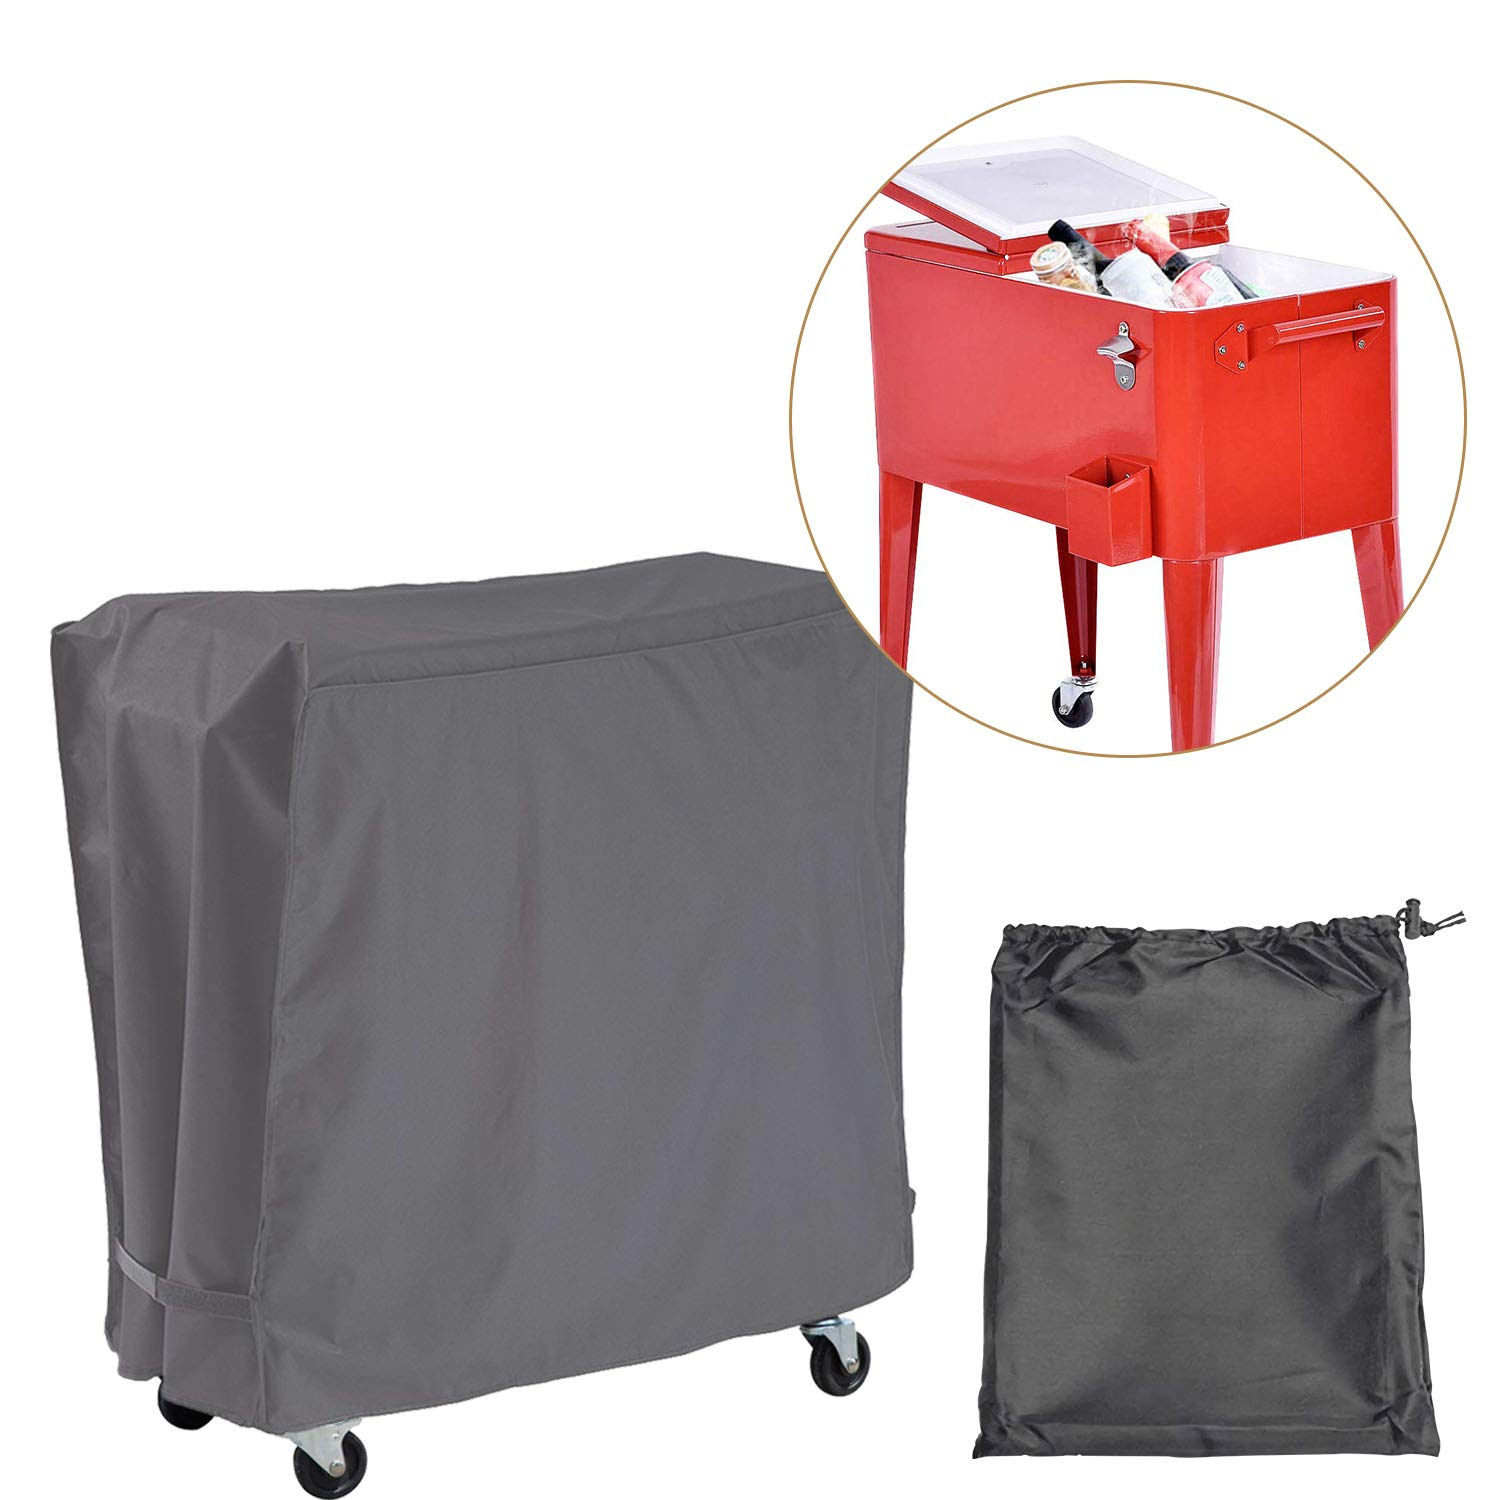 Covolo Outdoor Cooler Cart Cover with UV Coating- Fits 80 Quart Rolling Coolers Patio Cooler,Beverage Cart, Rolling Ice Chest, Waterproof Protective Cover (Grey) by Covolo